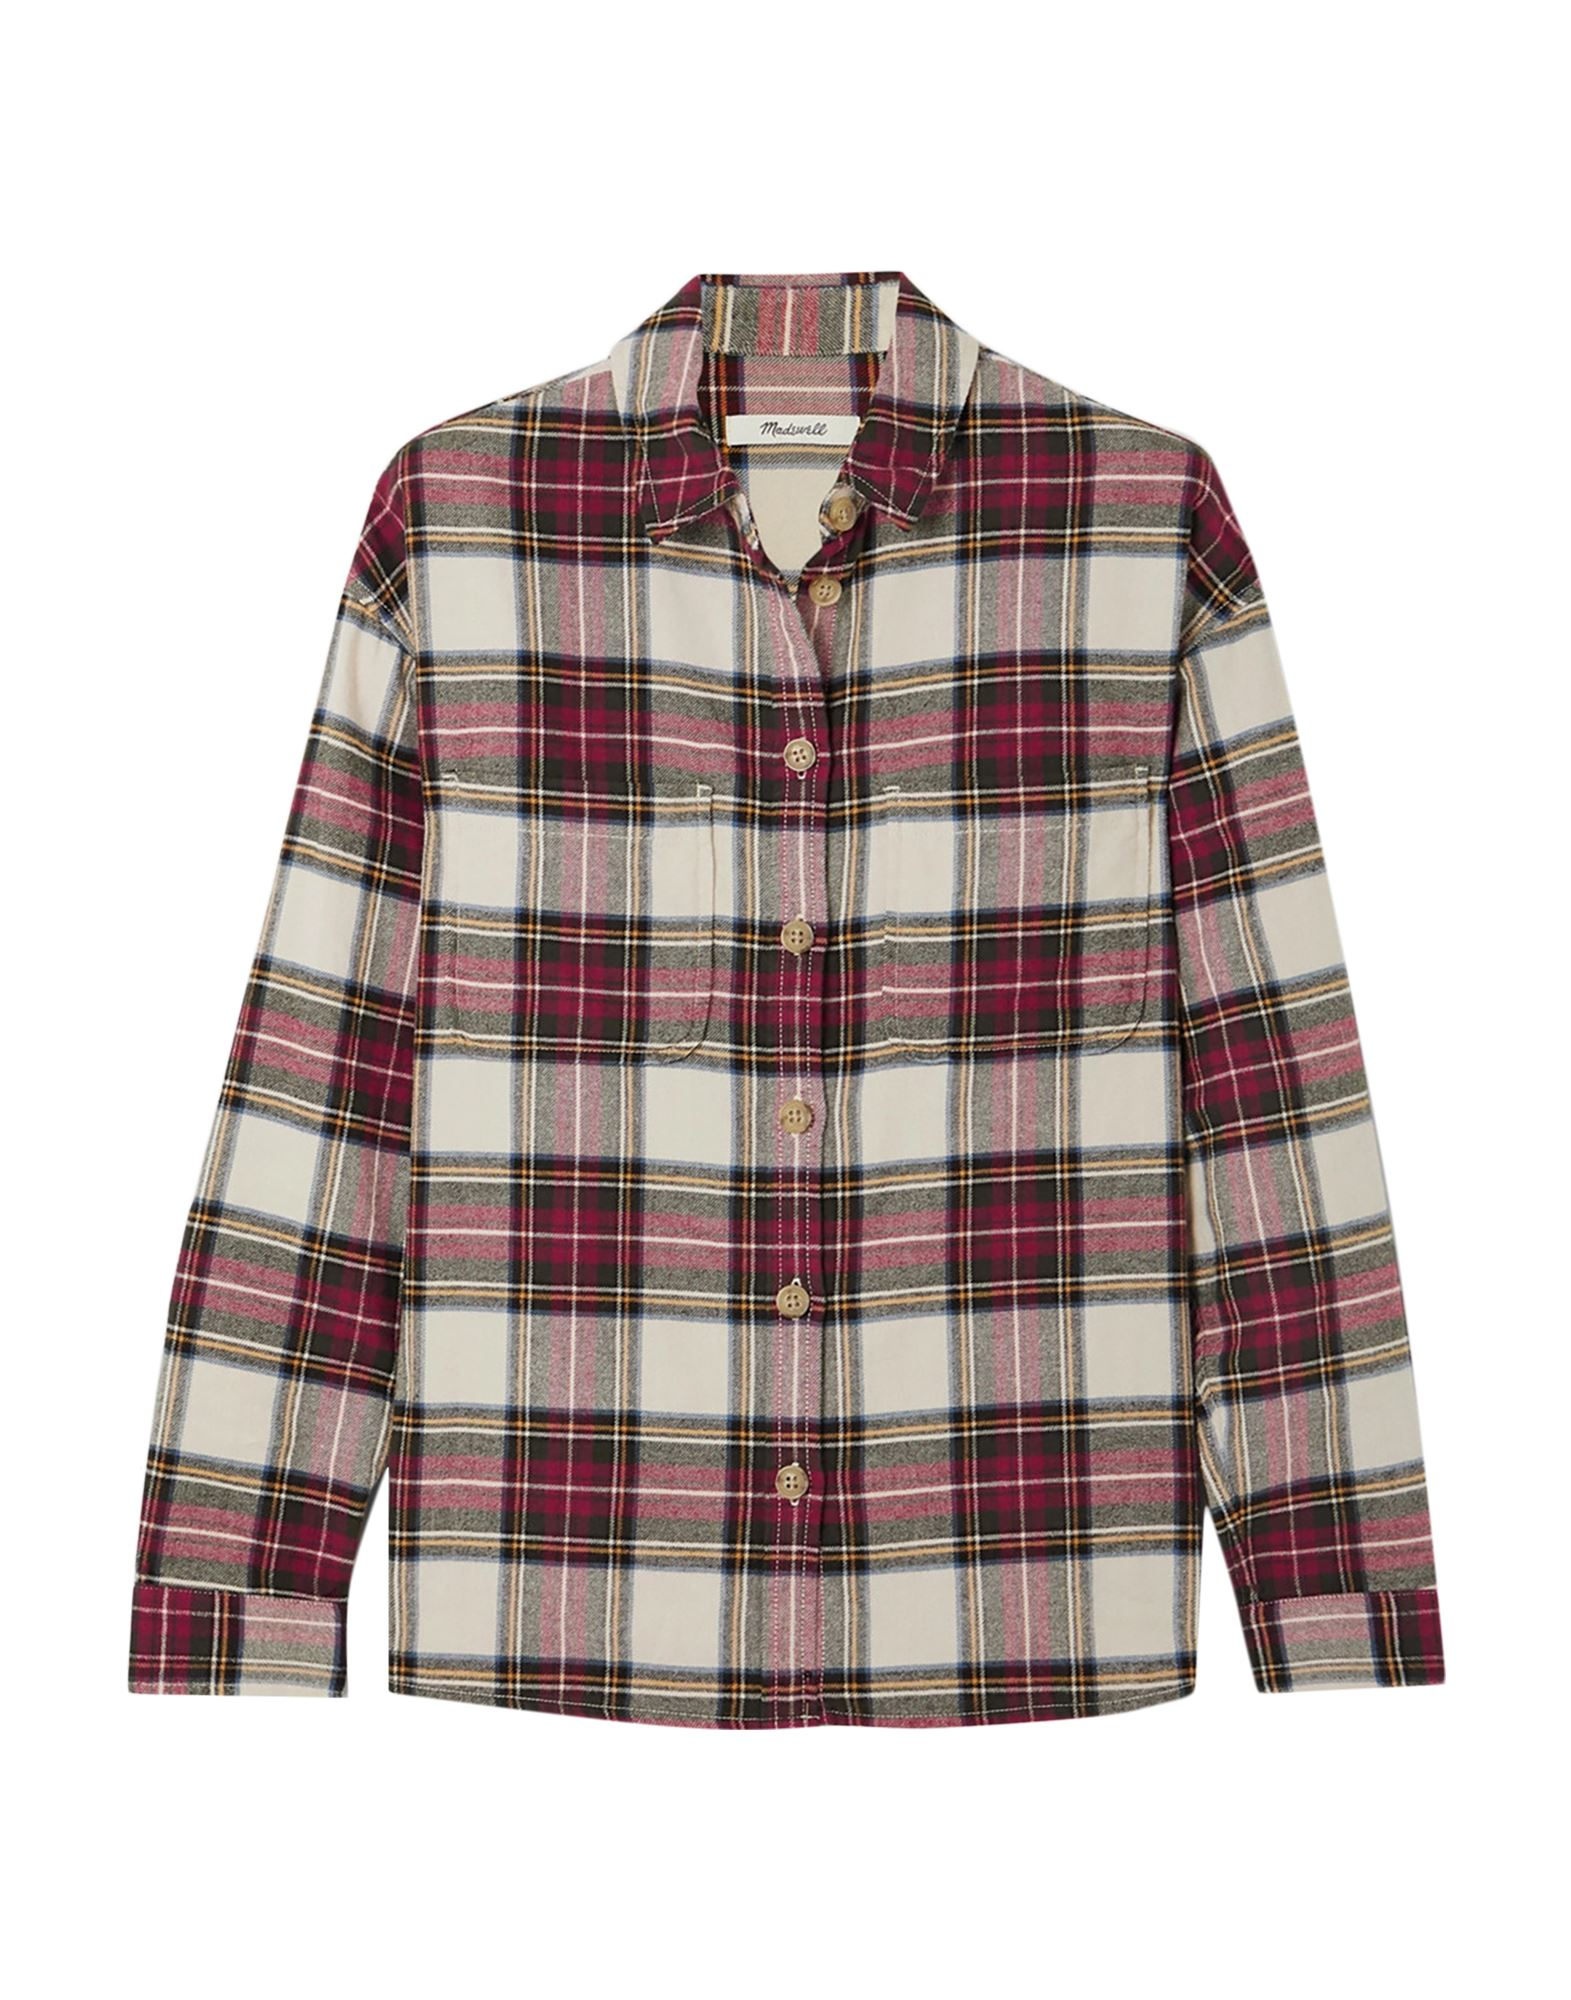 MADEWELL Shirts. flannel, no appliqués, tartan plaid, front closure, button closing, long sleeves, buttoned cuffs, classic neckline, two breast pockets. 100% Cotton